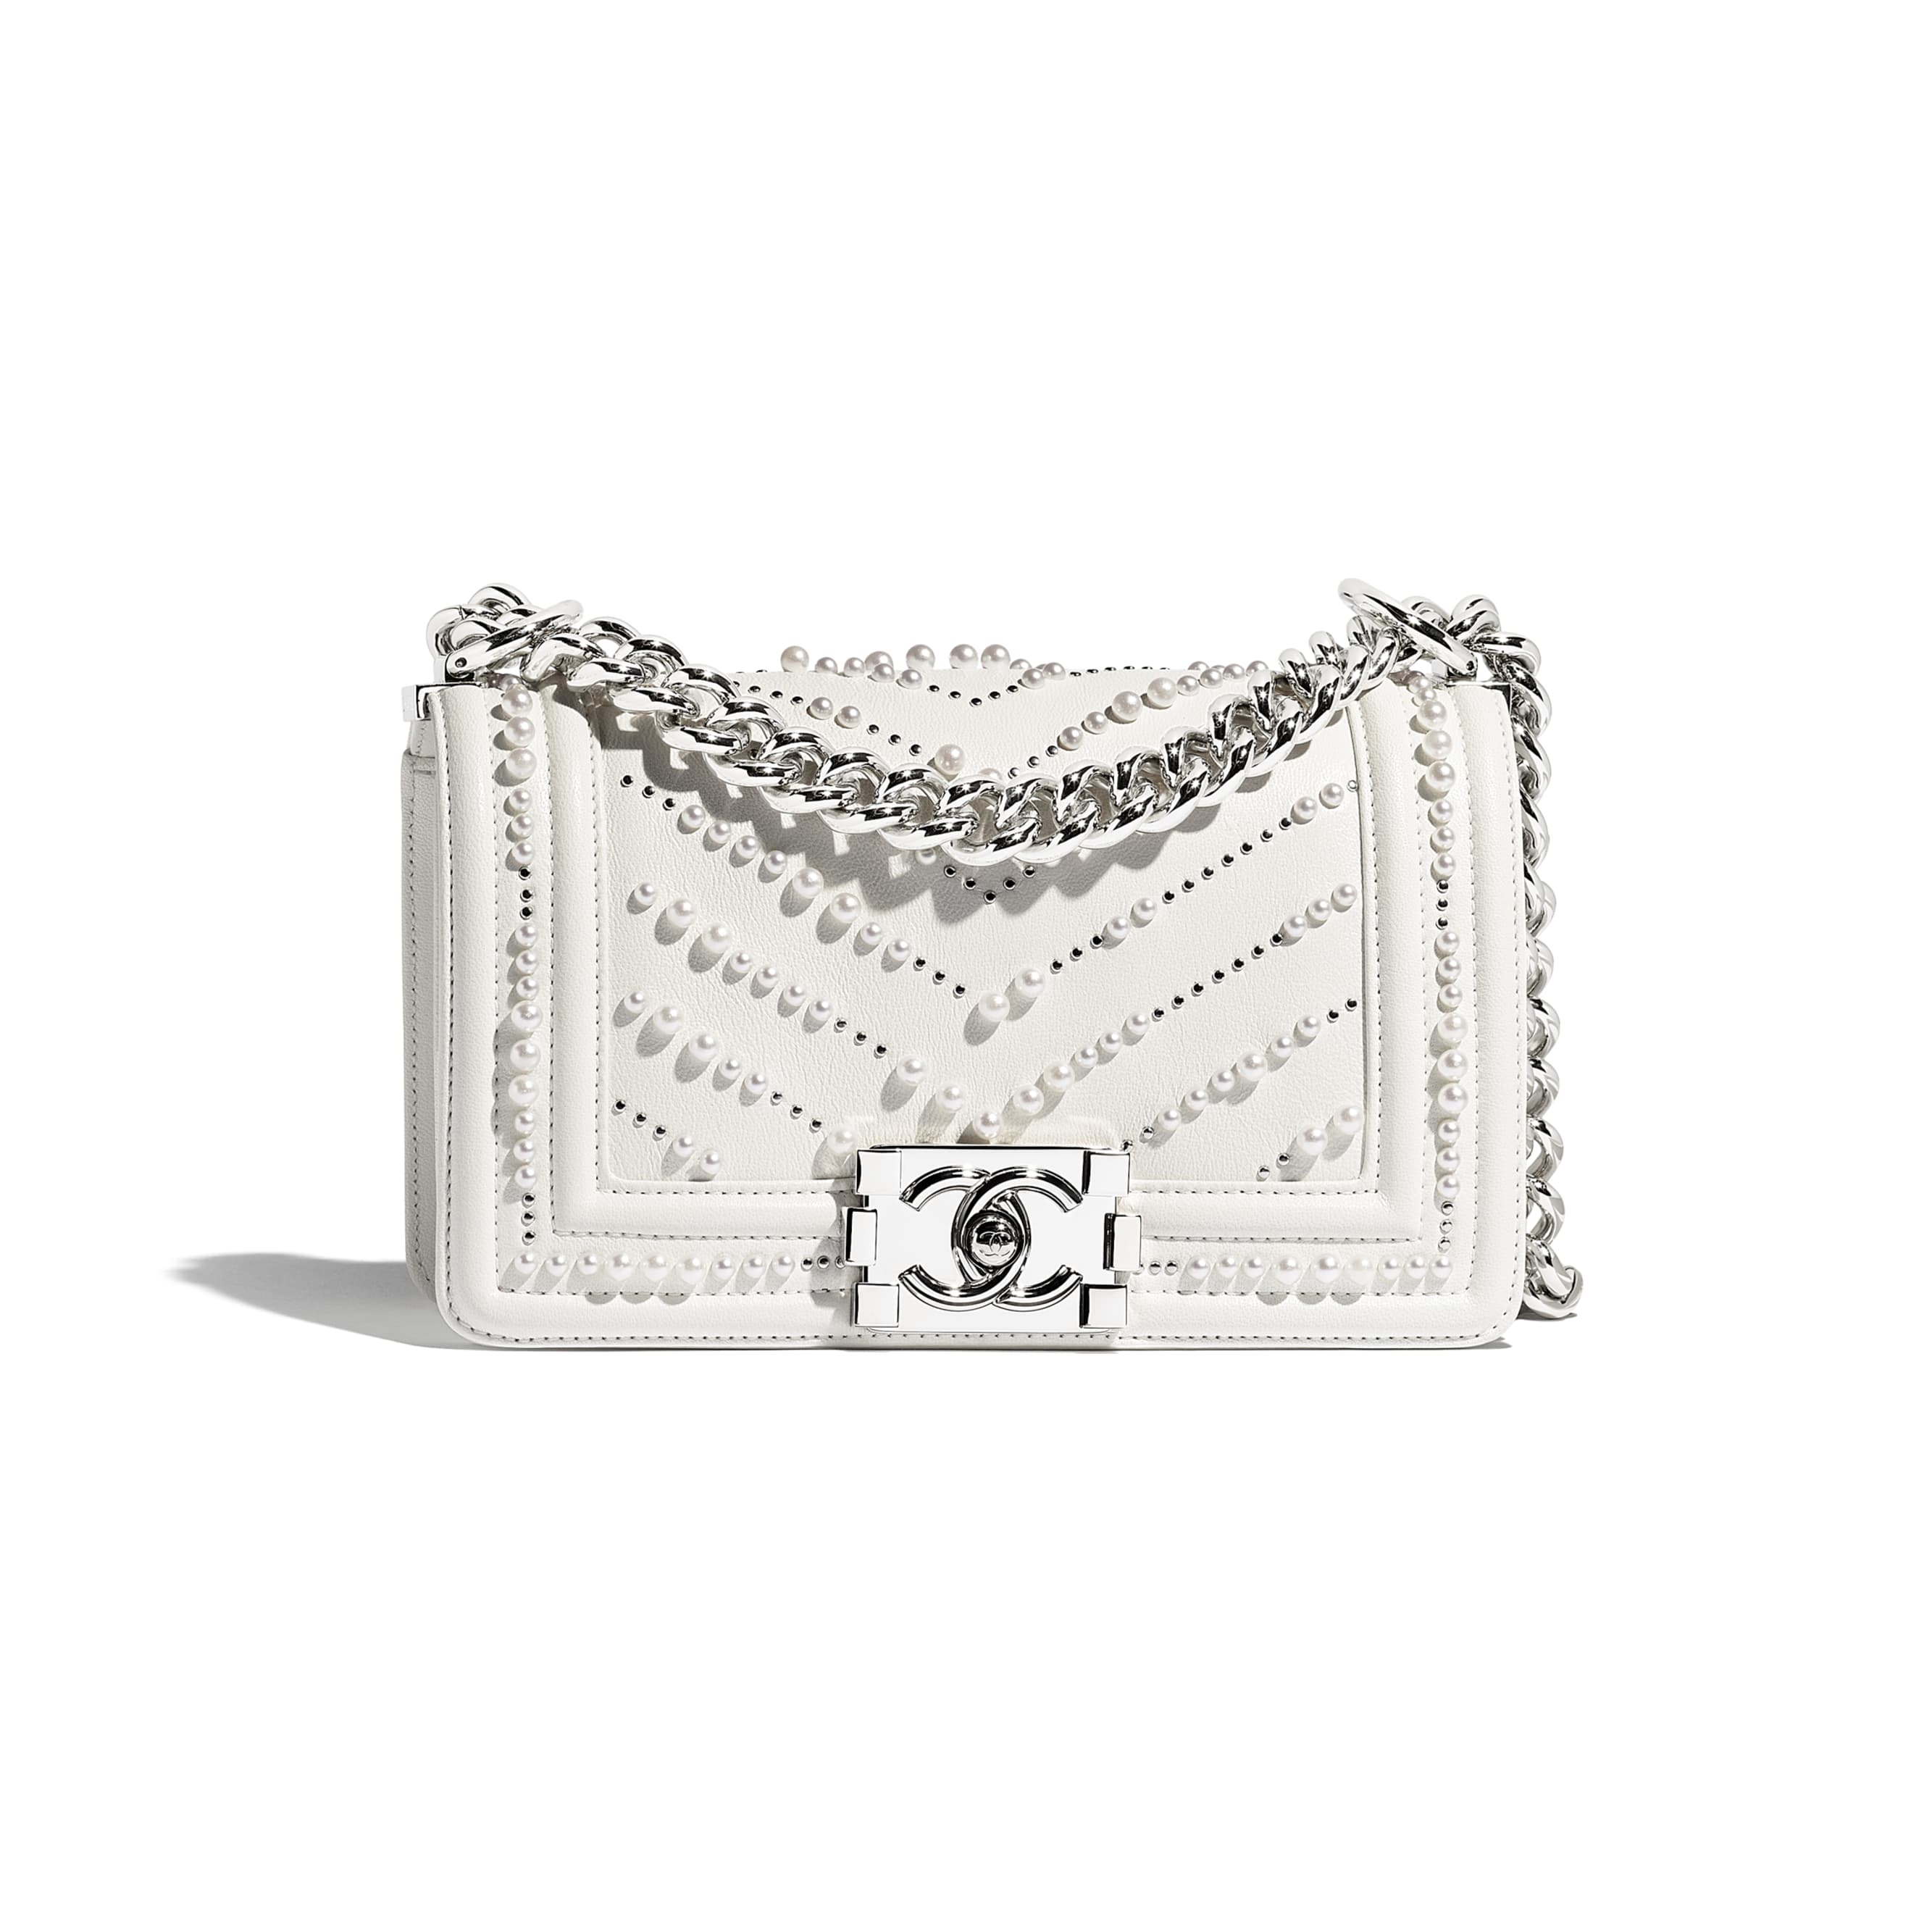 Small BOY CHANEL Handbag - White - Calfskin, Imitation Pearls & Silver-Tone Metal - Default view - see standard sized version